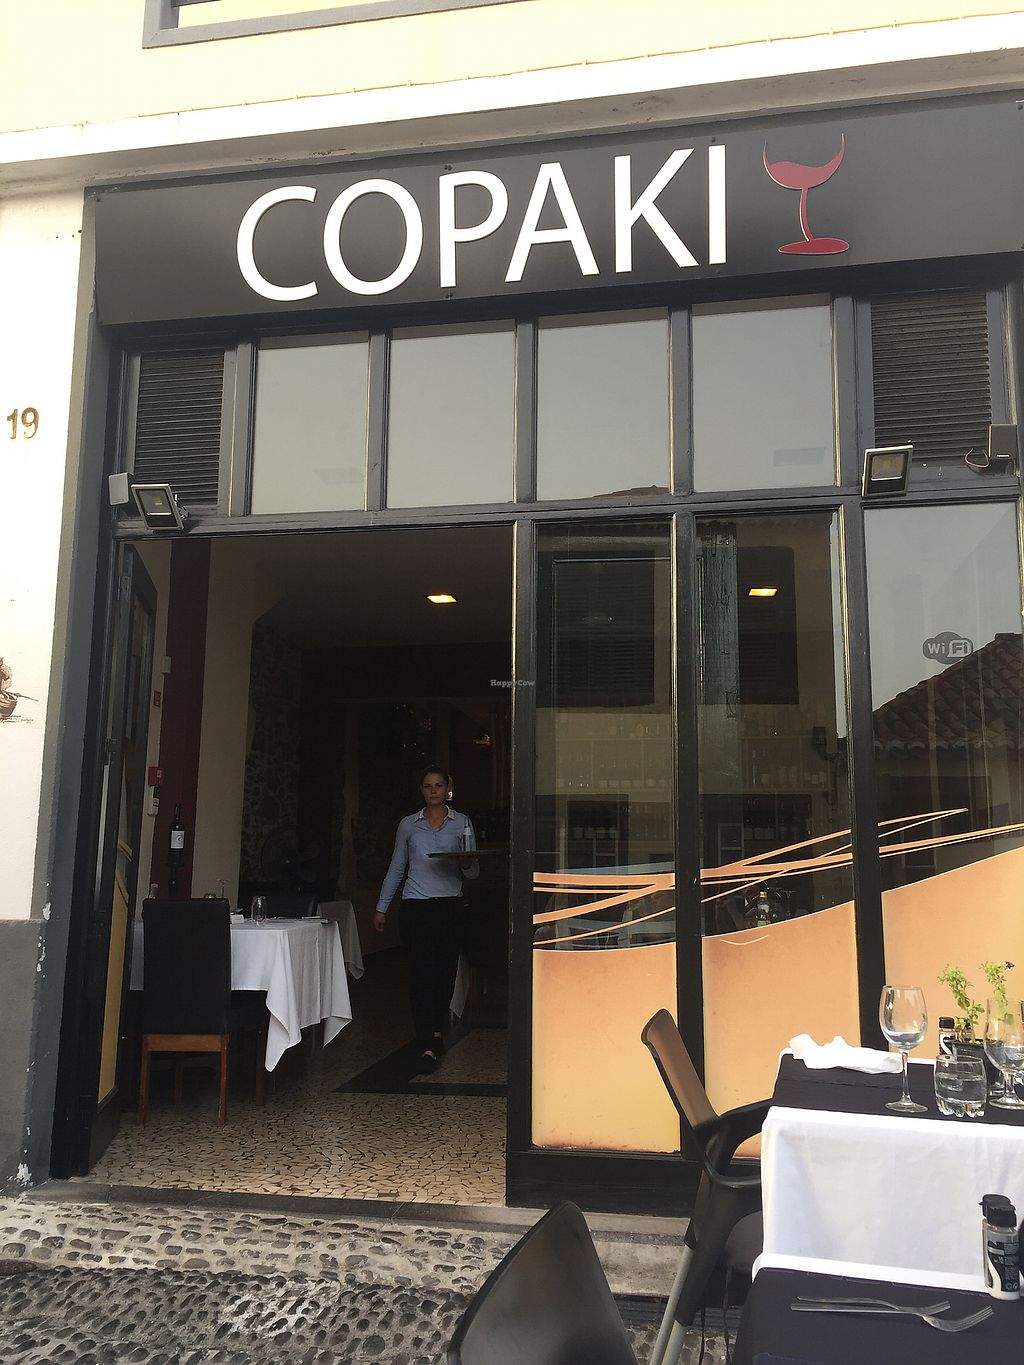 """Photo of Copaki Restaurant Bar  by <a href=""""/members/profile/StephenCollins"""">StephenCollins</a> <br/>The restaurant <br/> August 8, 2017  - <a href='/contact/abuse/image/95699/290550'>Report</a>"""